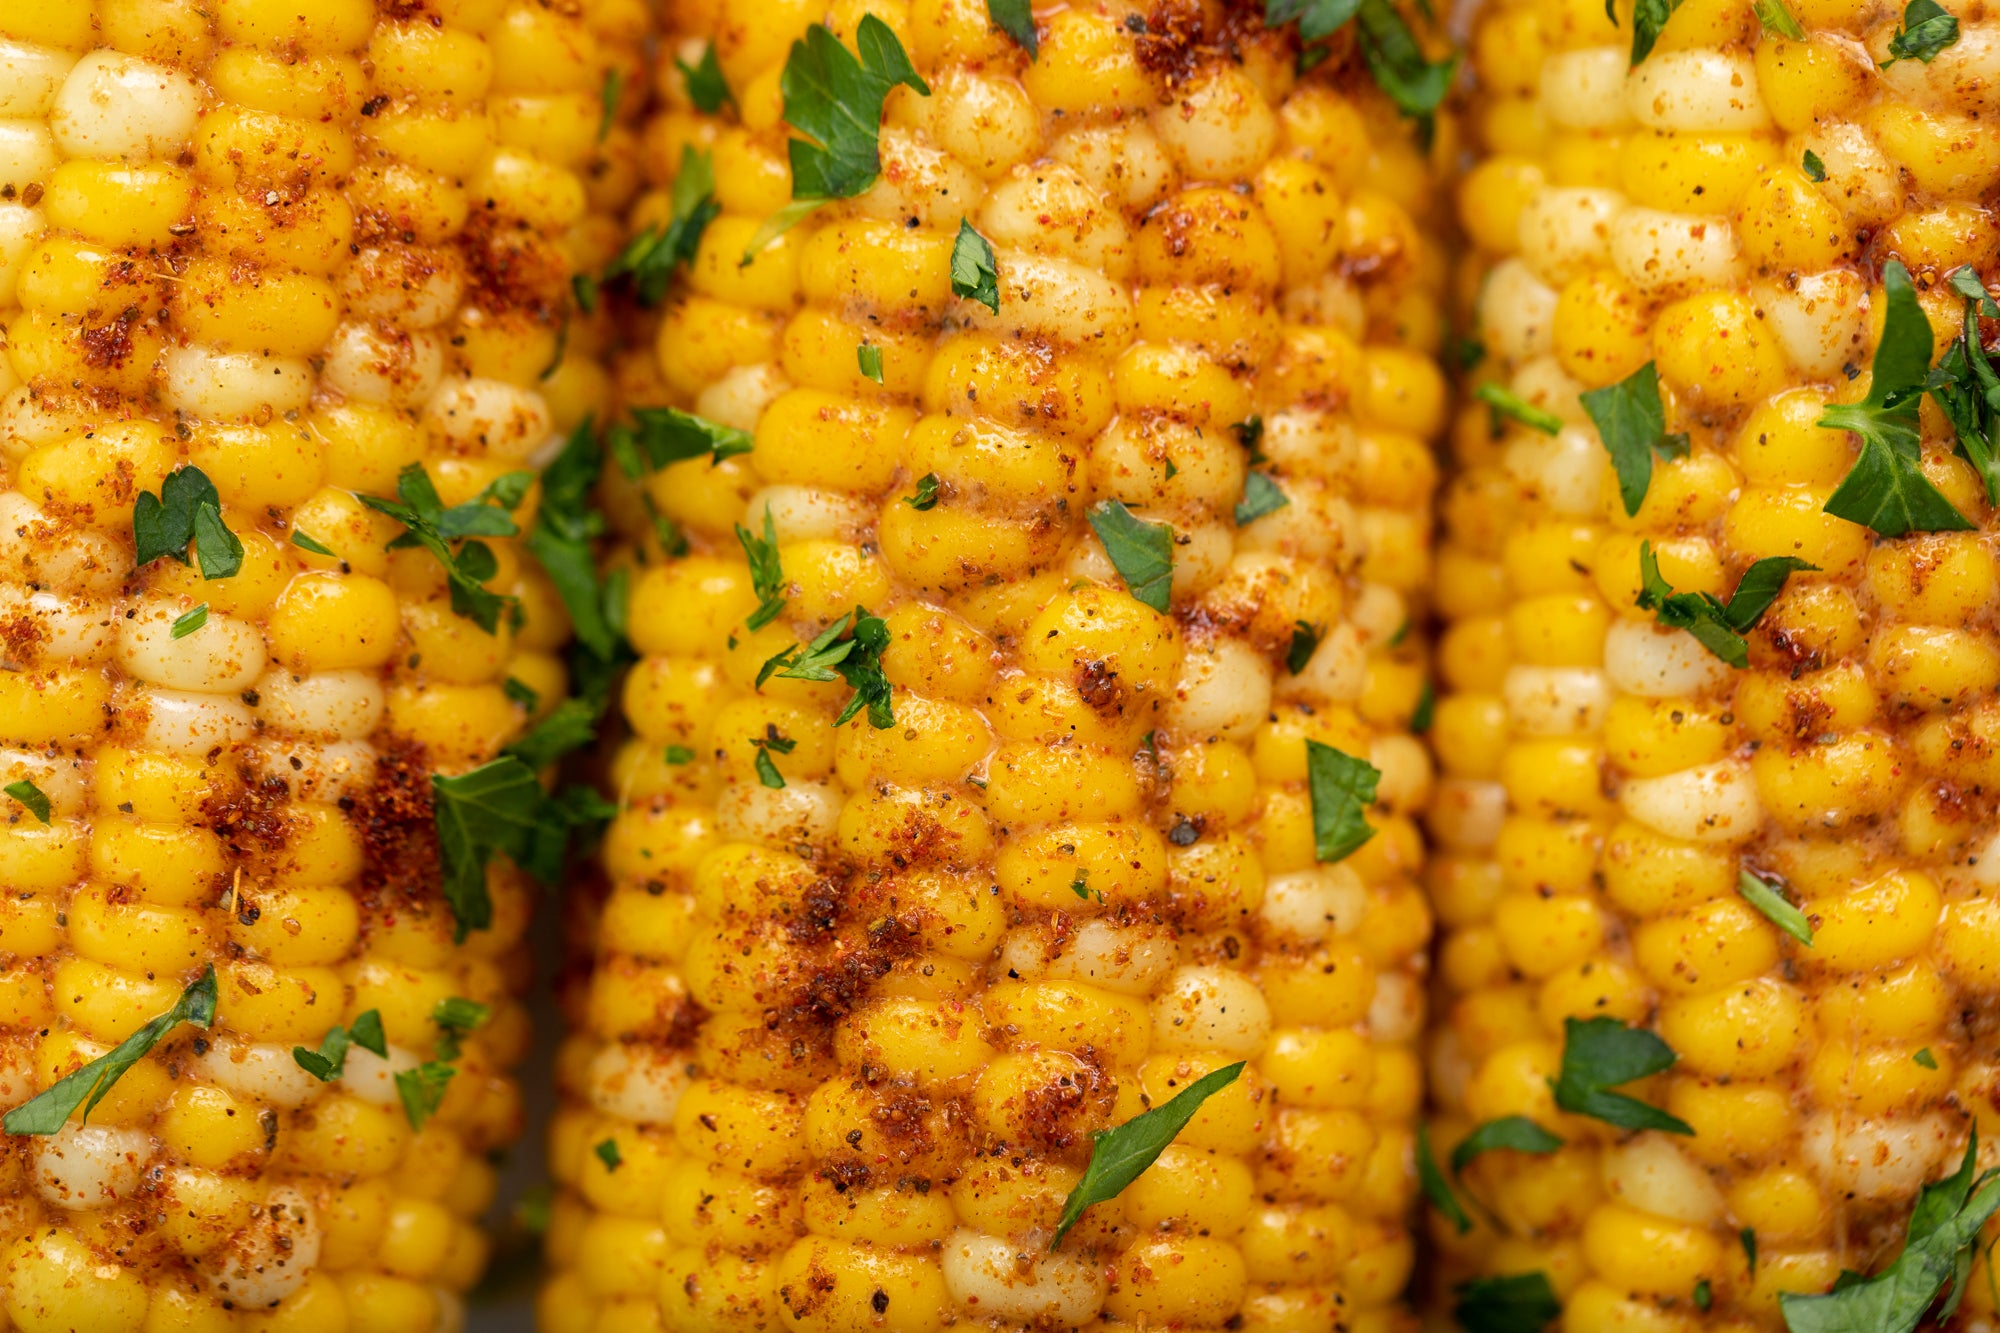 Recipe - BBQ Spice Rub Recipe + Grilled Corn with Spiced Butter